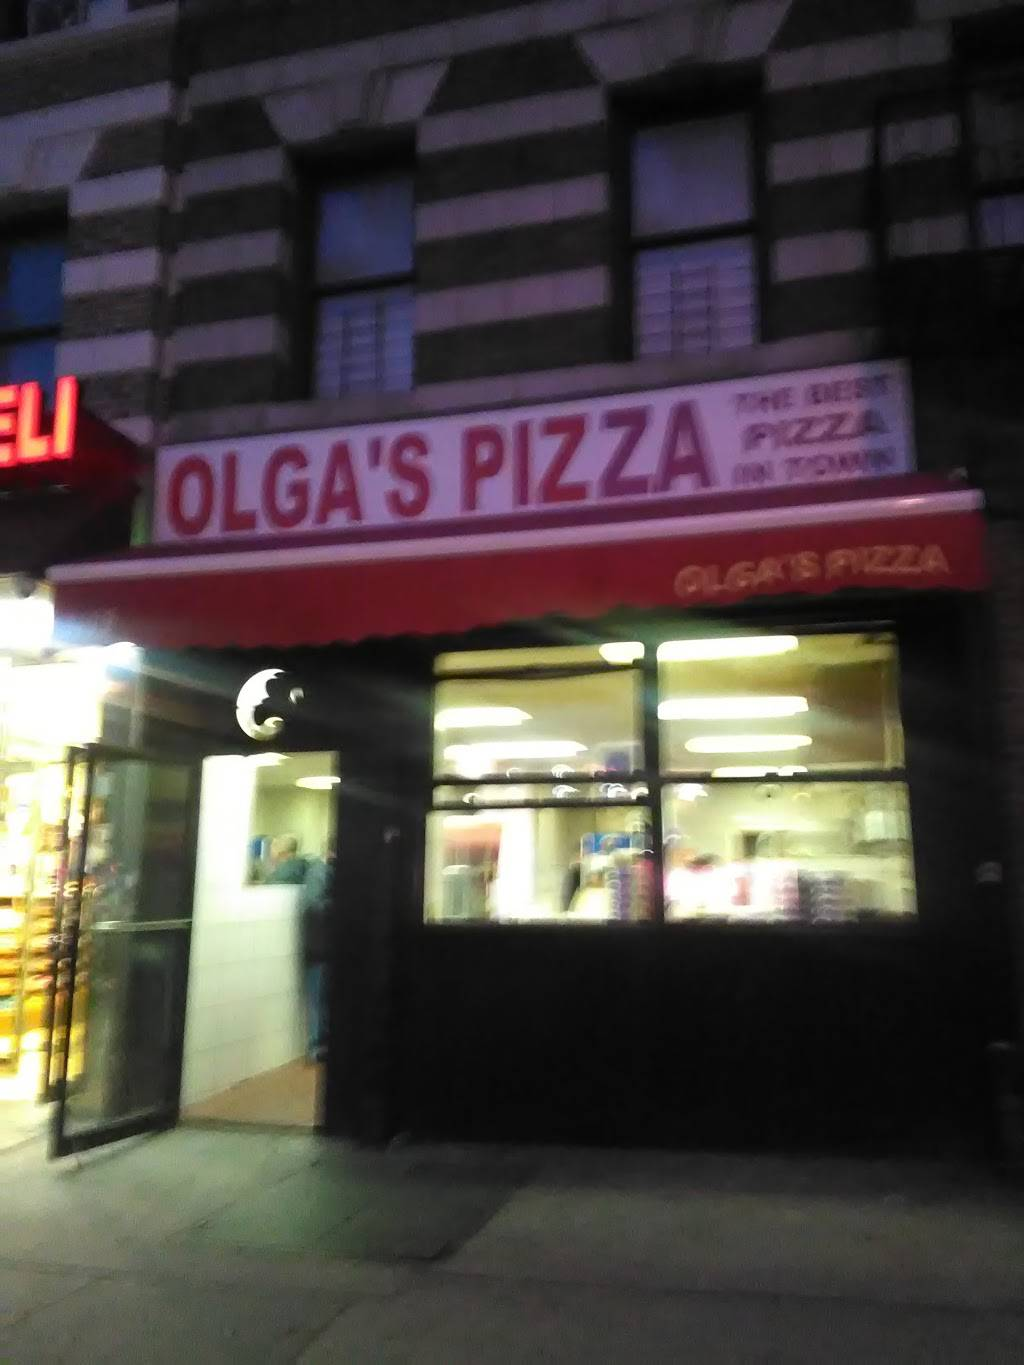 Olgas Pizza | restaurant | 3409 Broadway, New York, NY 10031, USA | 2122347878 OR +1 212-234-7878